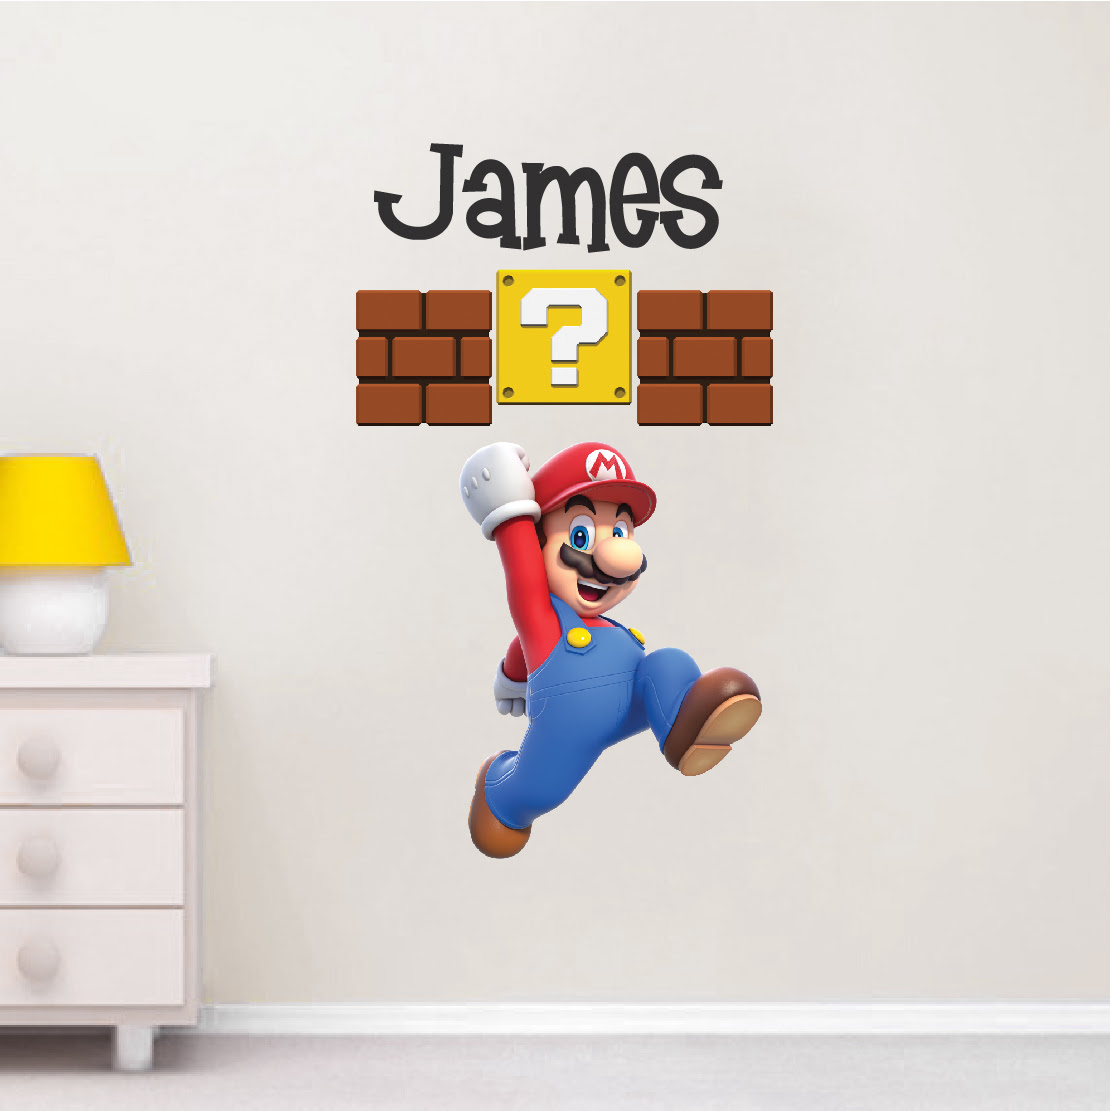 Supermario_Boys_Bedroom_Wall_Decal_Mural_Sticker_b99